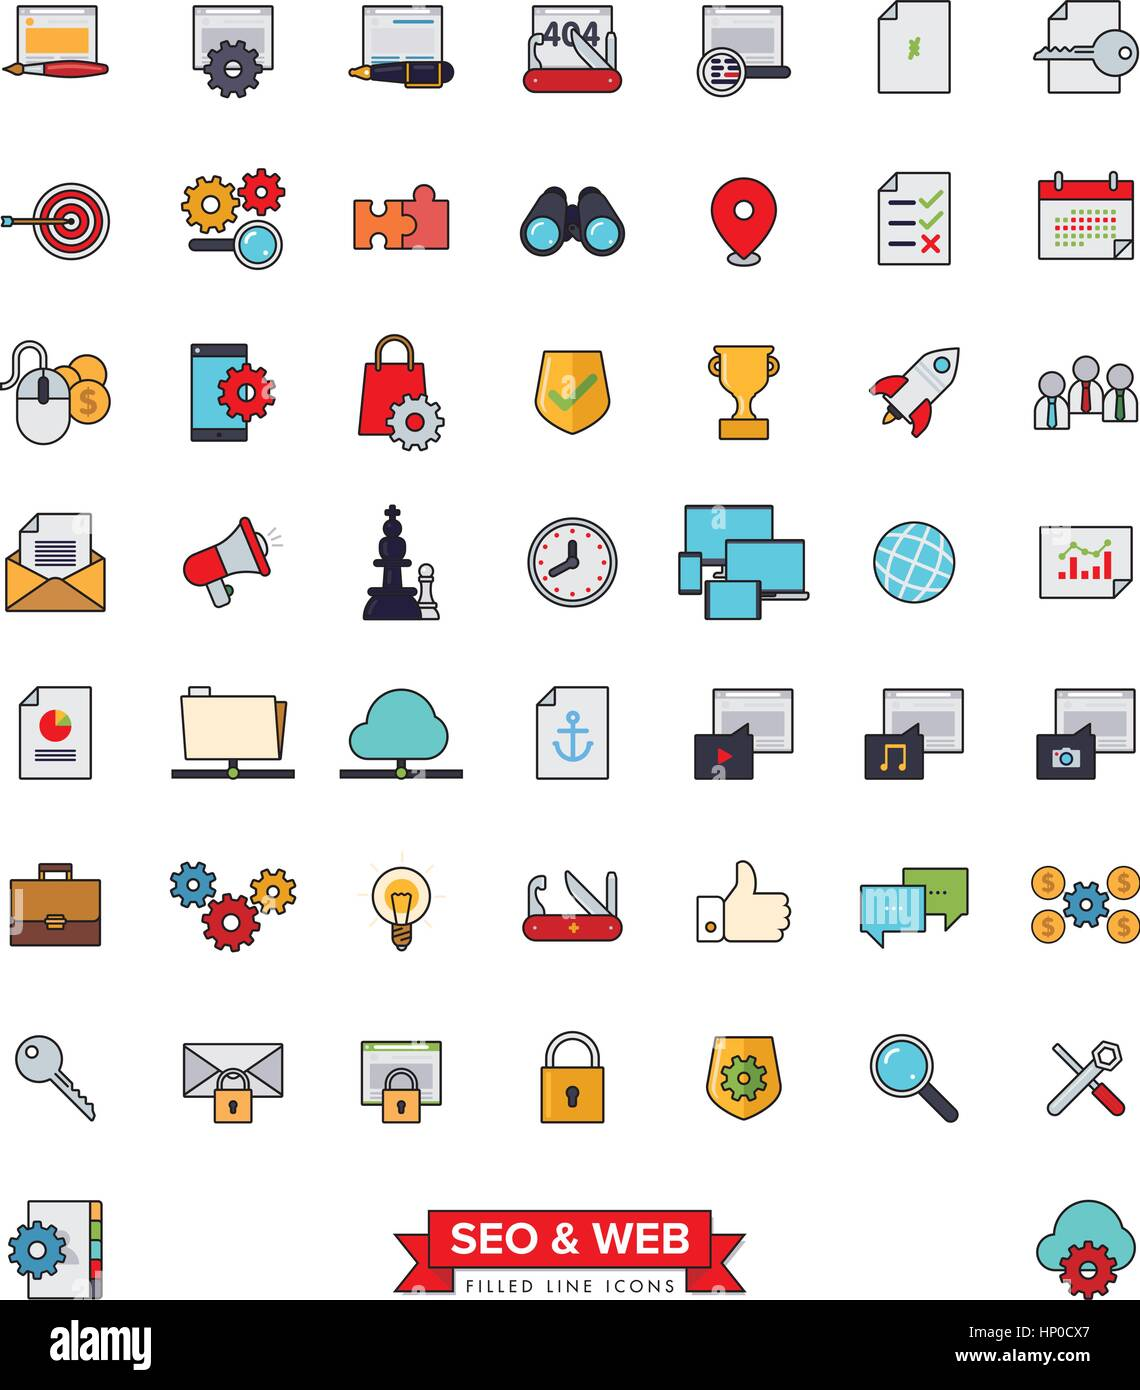 Collection of 51 SEO and Web Services filled line icons - Stock Image